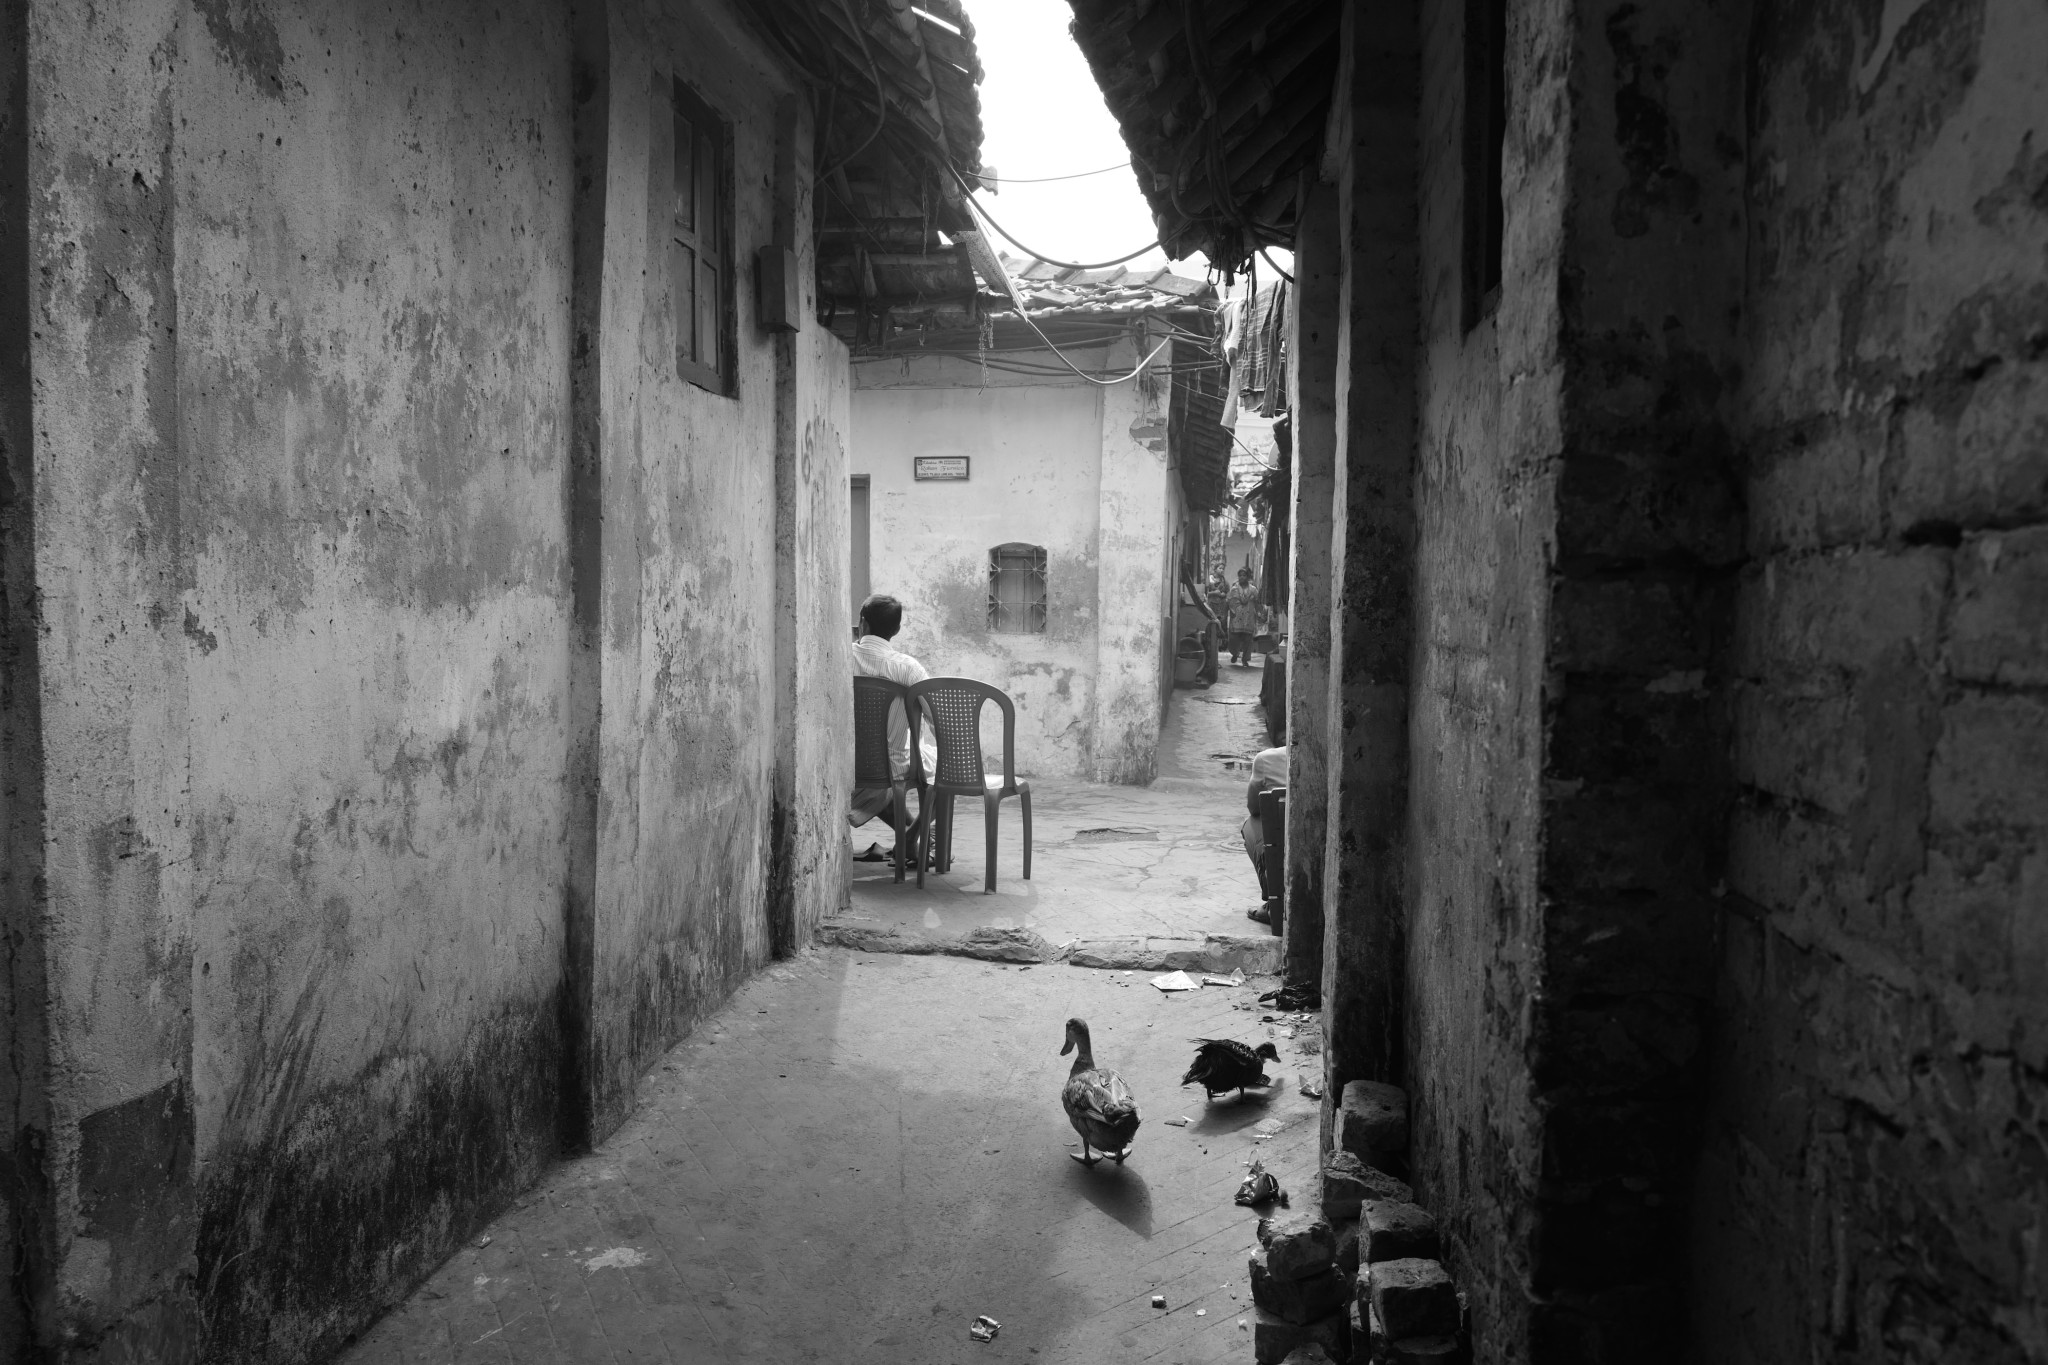 Black and white chair photography - Intimacy And Photography By Buku Sarkar